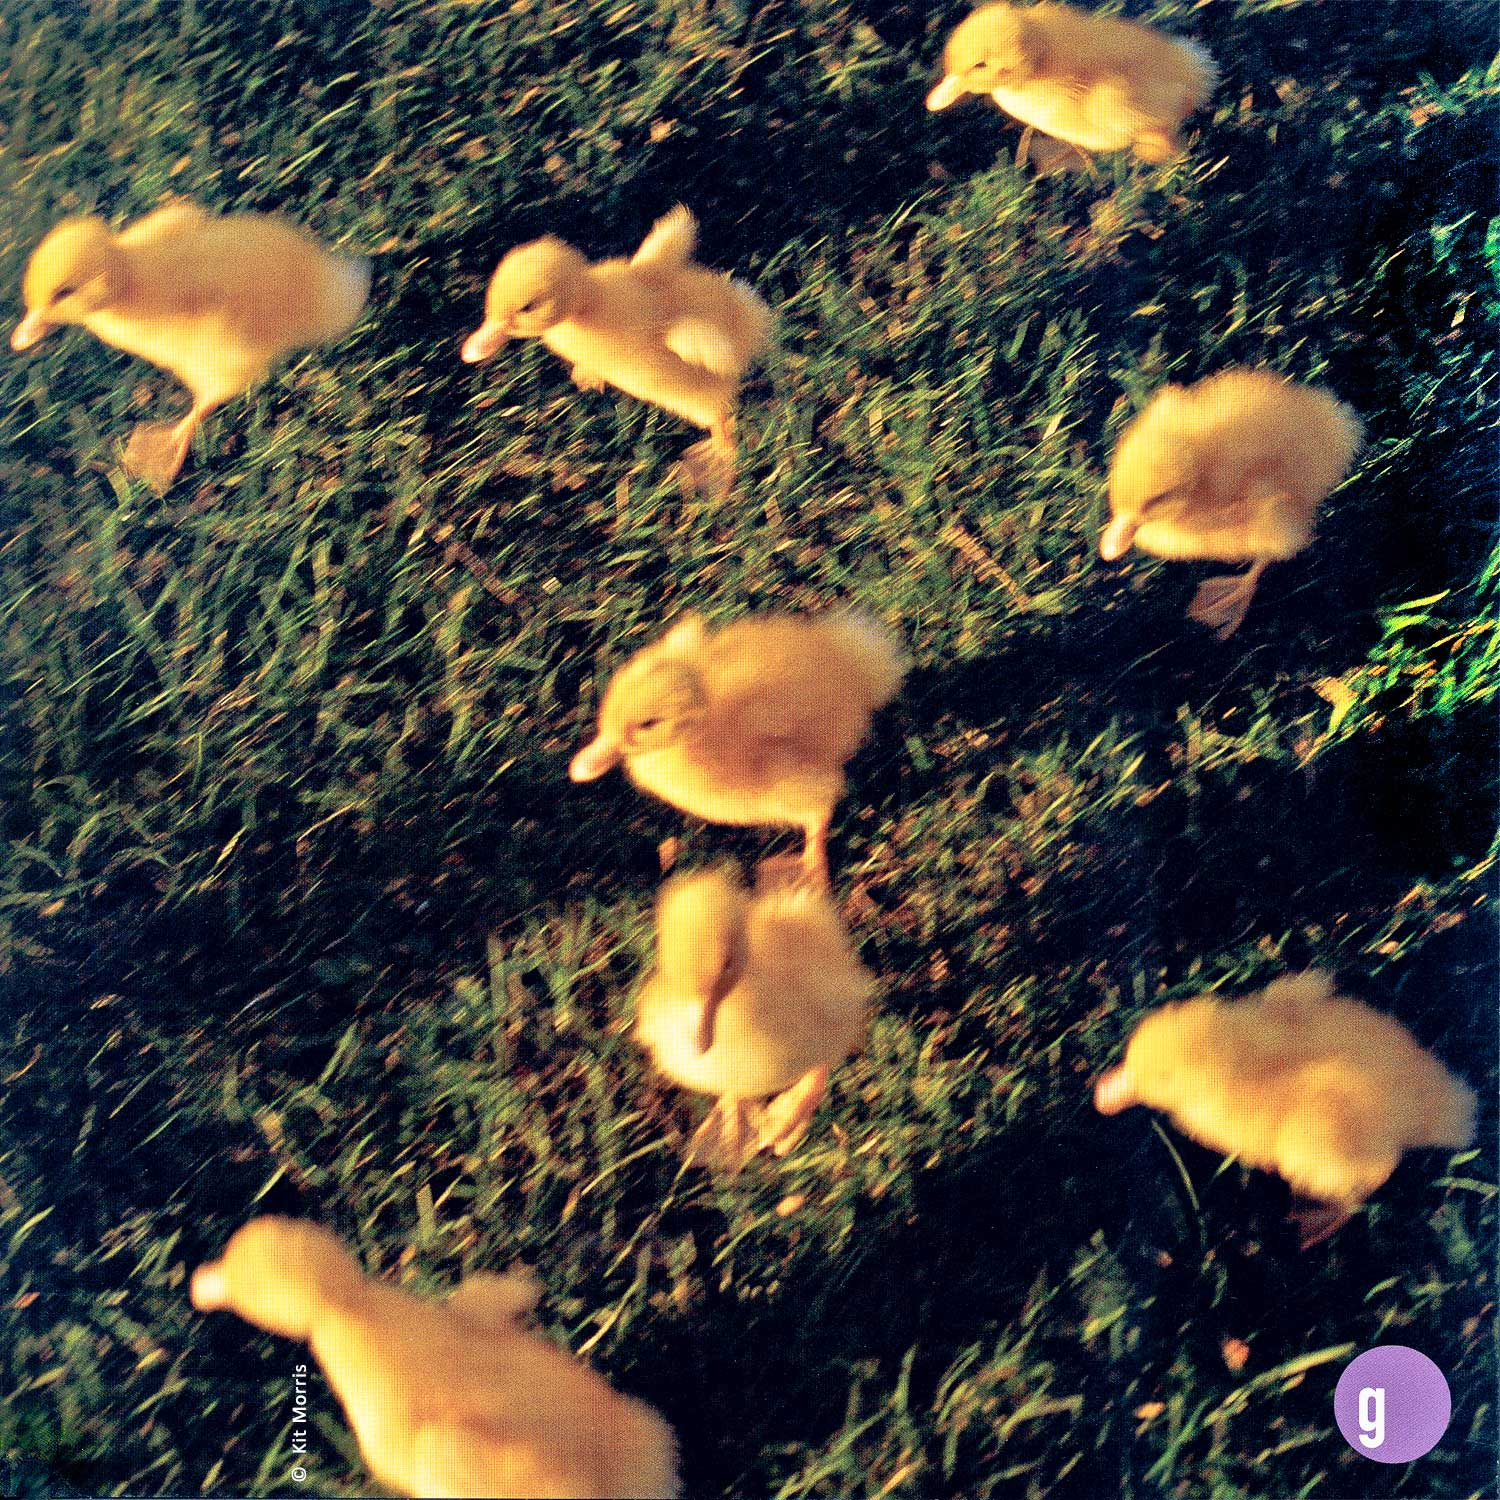 photo of eight yellow baby ducklings running across grass used for an in-store Easter poster